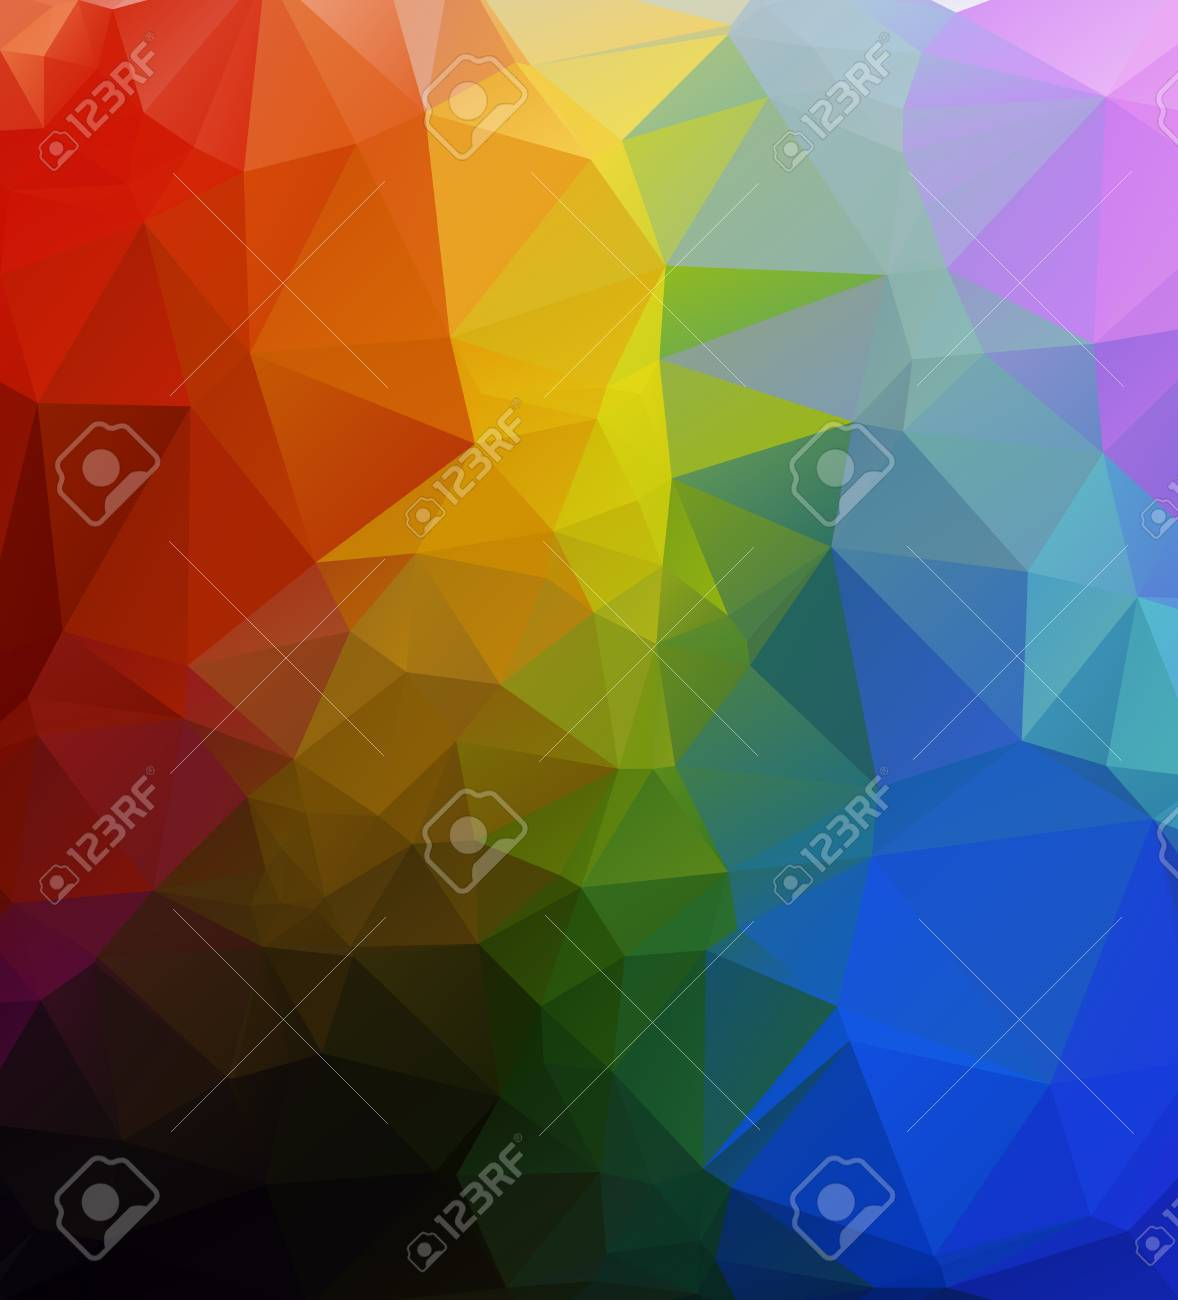 Abstract multicolor background. Vector polygonal design illustration graphic - 54856689